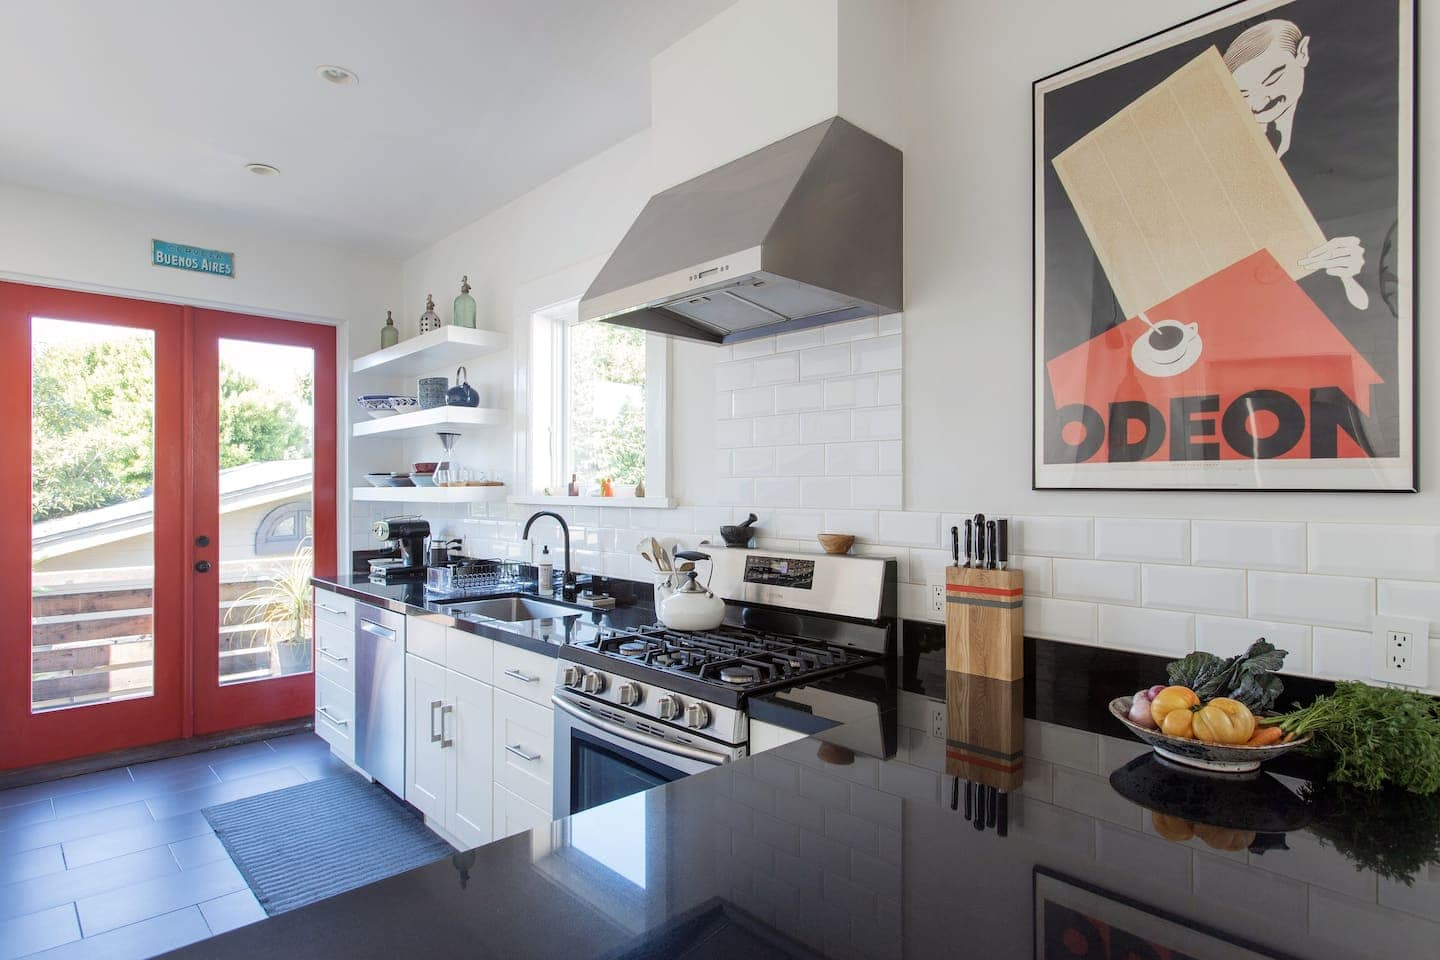 airbnbs in oakland